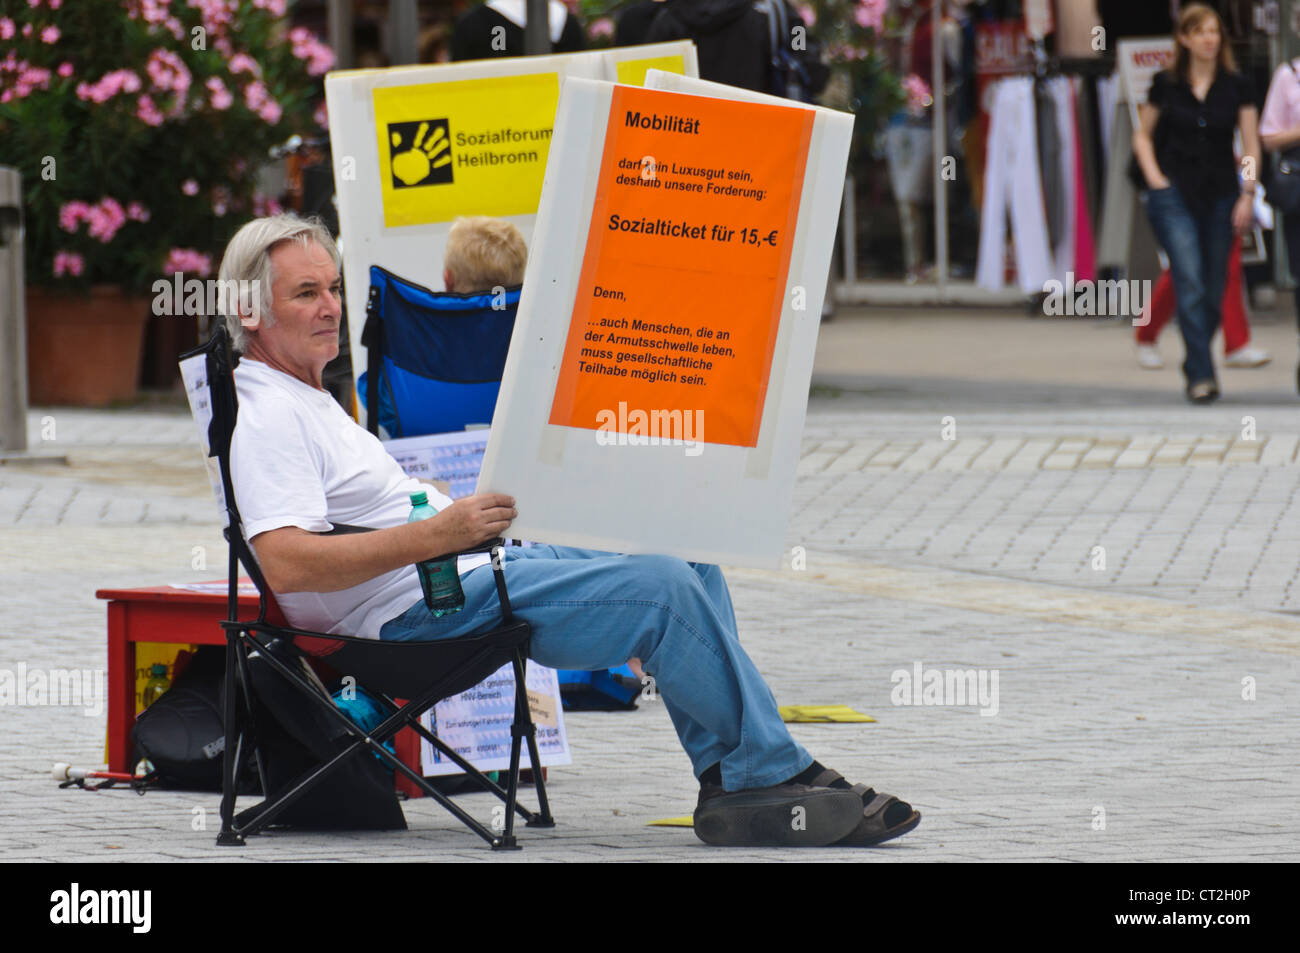 Heilbronn Germany, Male Demonstrator protest for social issues - Stock Image